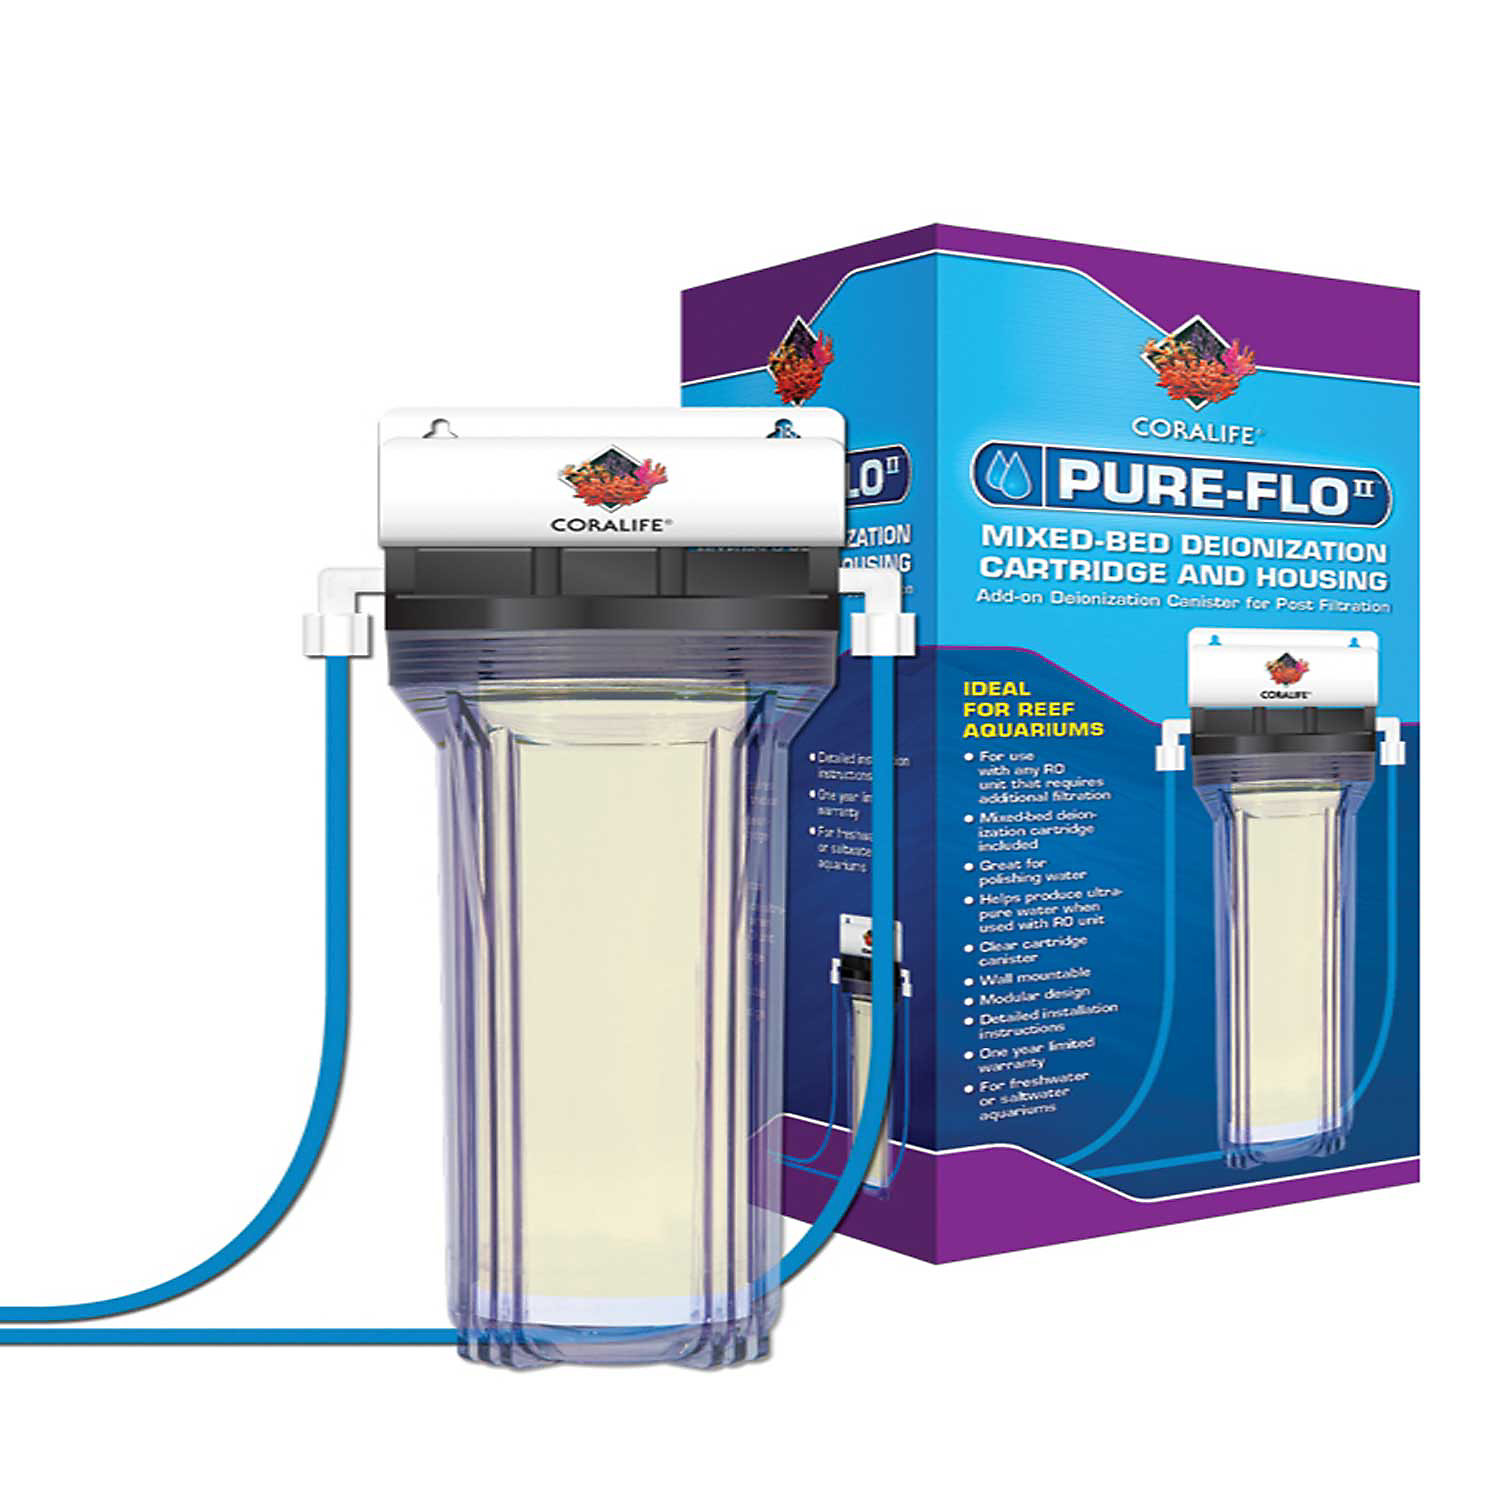 Coralife Pure Flo II Reverse Osmosis Deionization Canister Add On 6.5 L X 5.6 W X 13.5 H